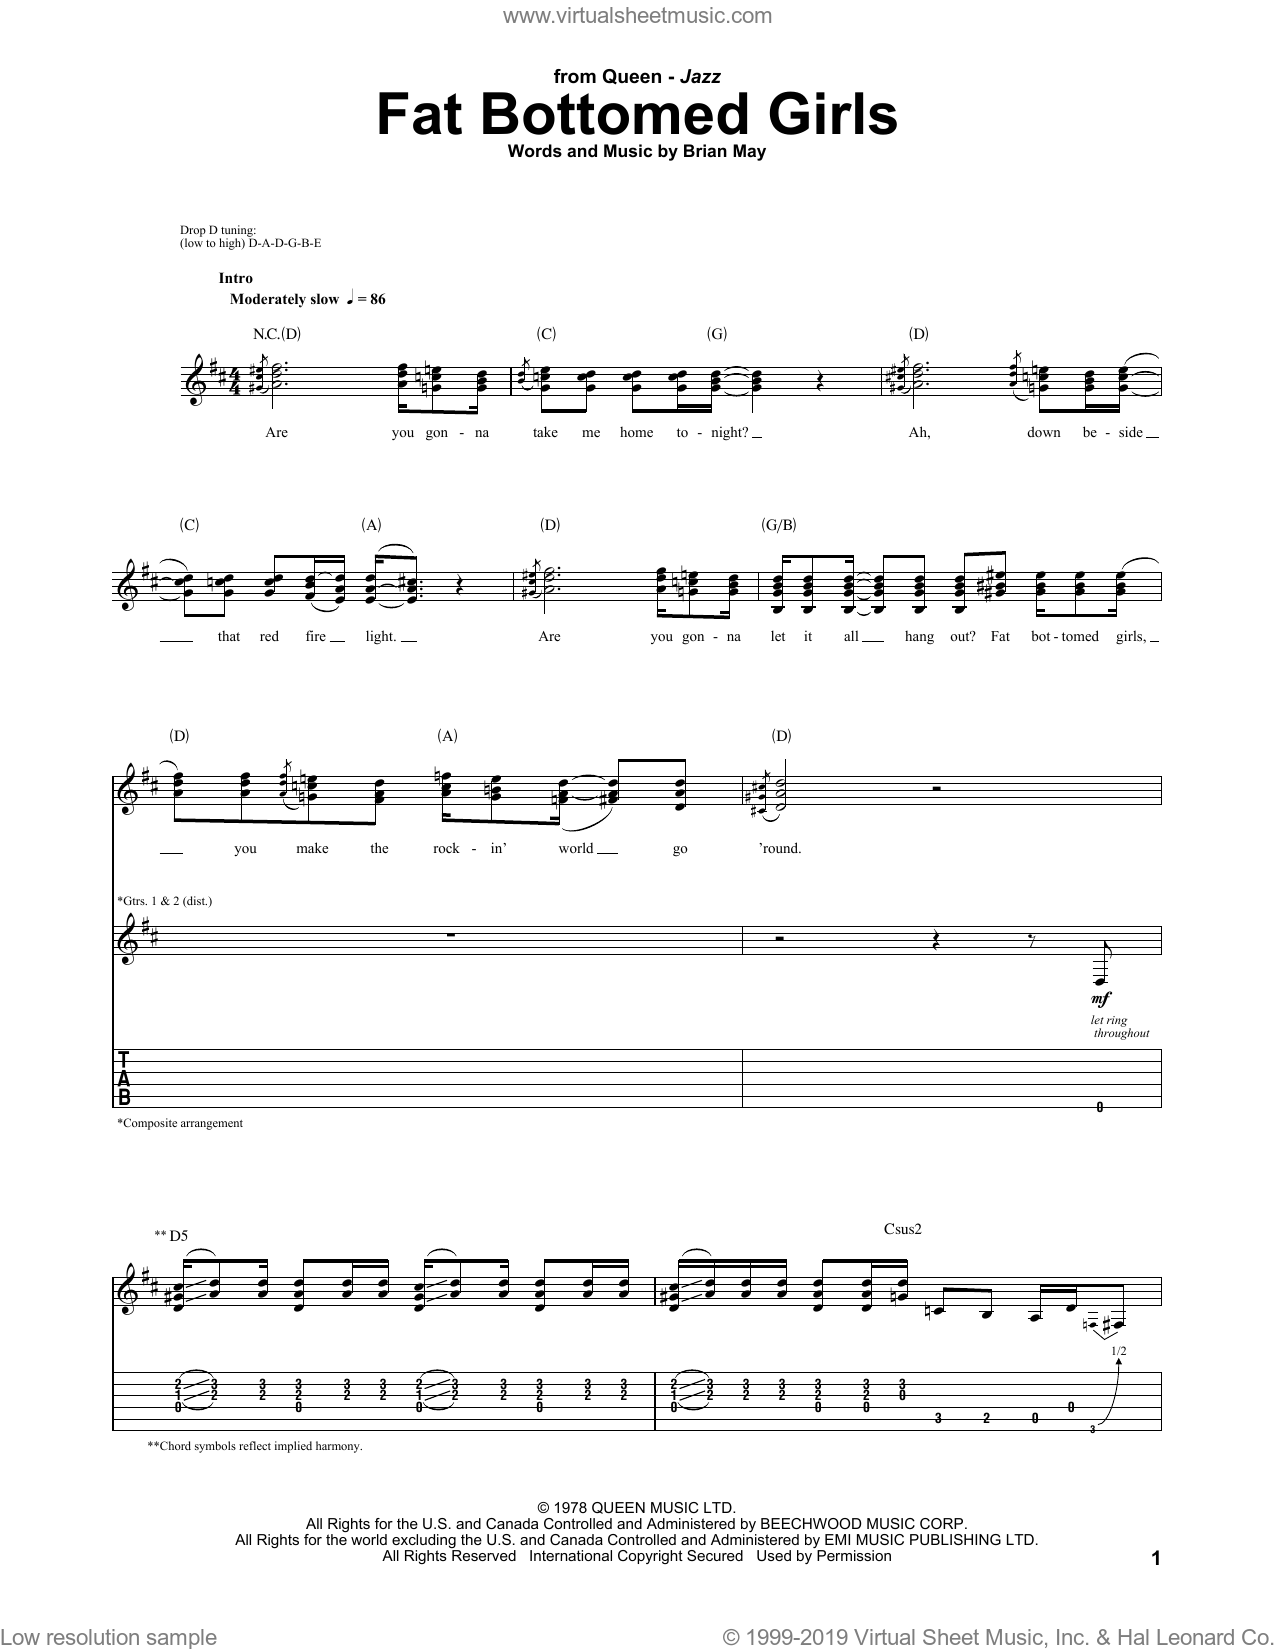 Fat Bottomed Girls sheet music for guitar (tablature) by Brian May